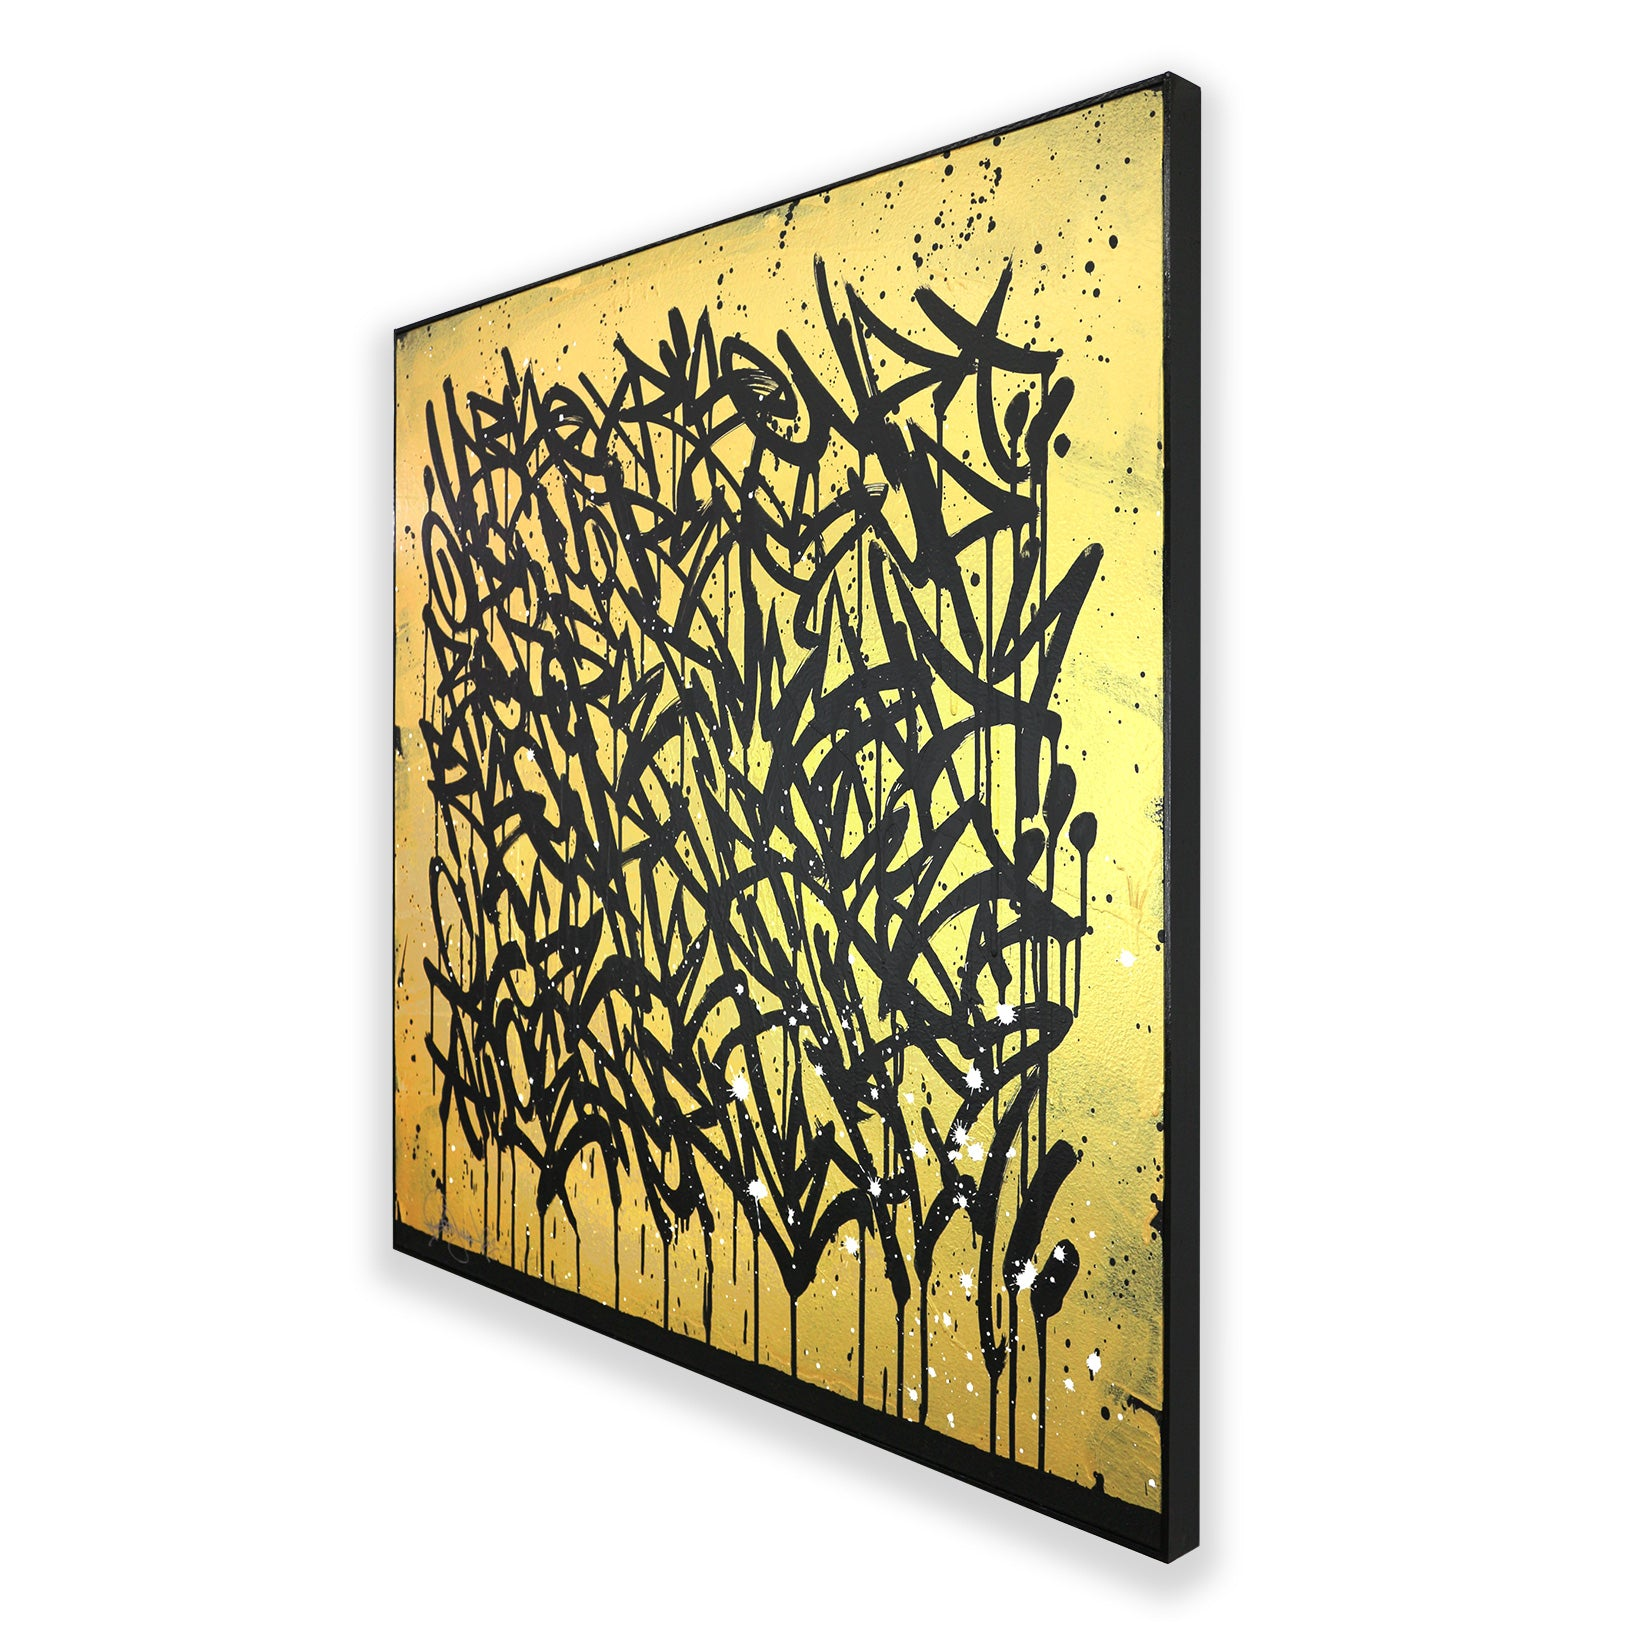 SOLID GOLD - 40X40 - Bisco Smith